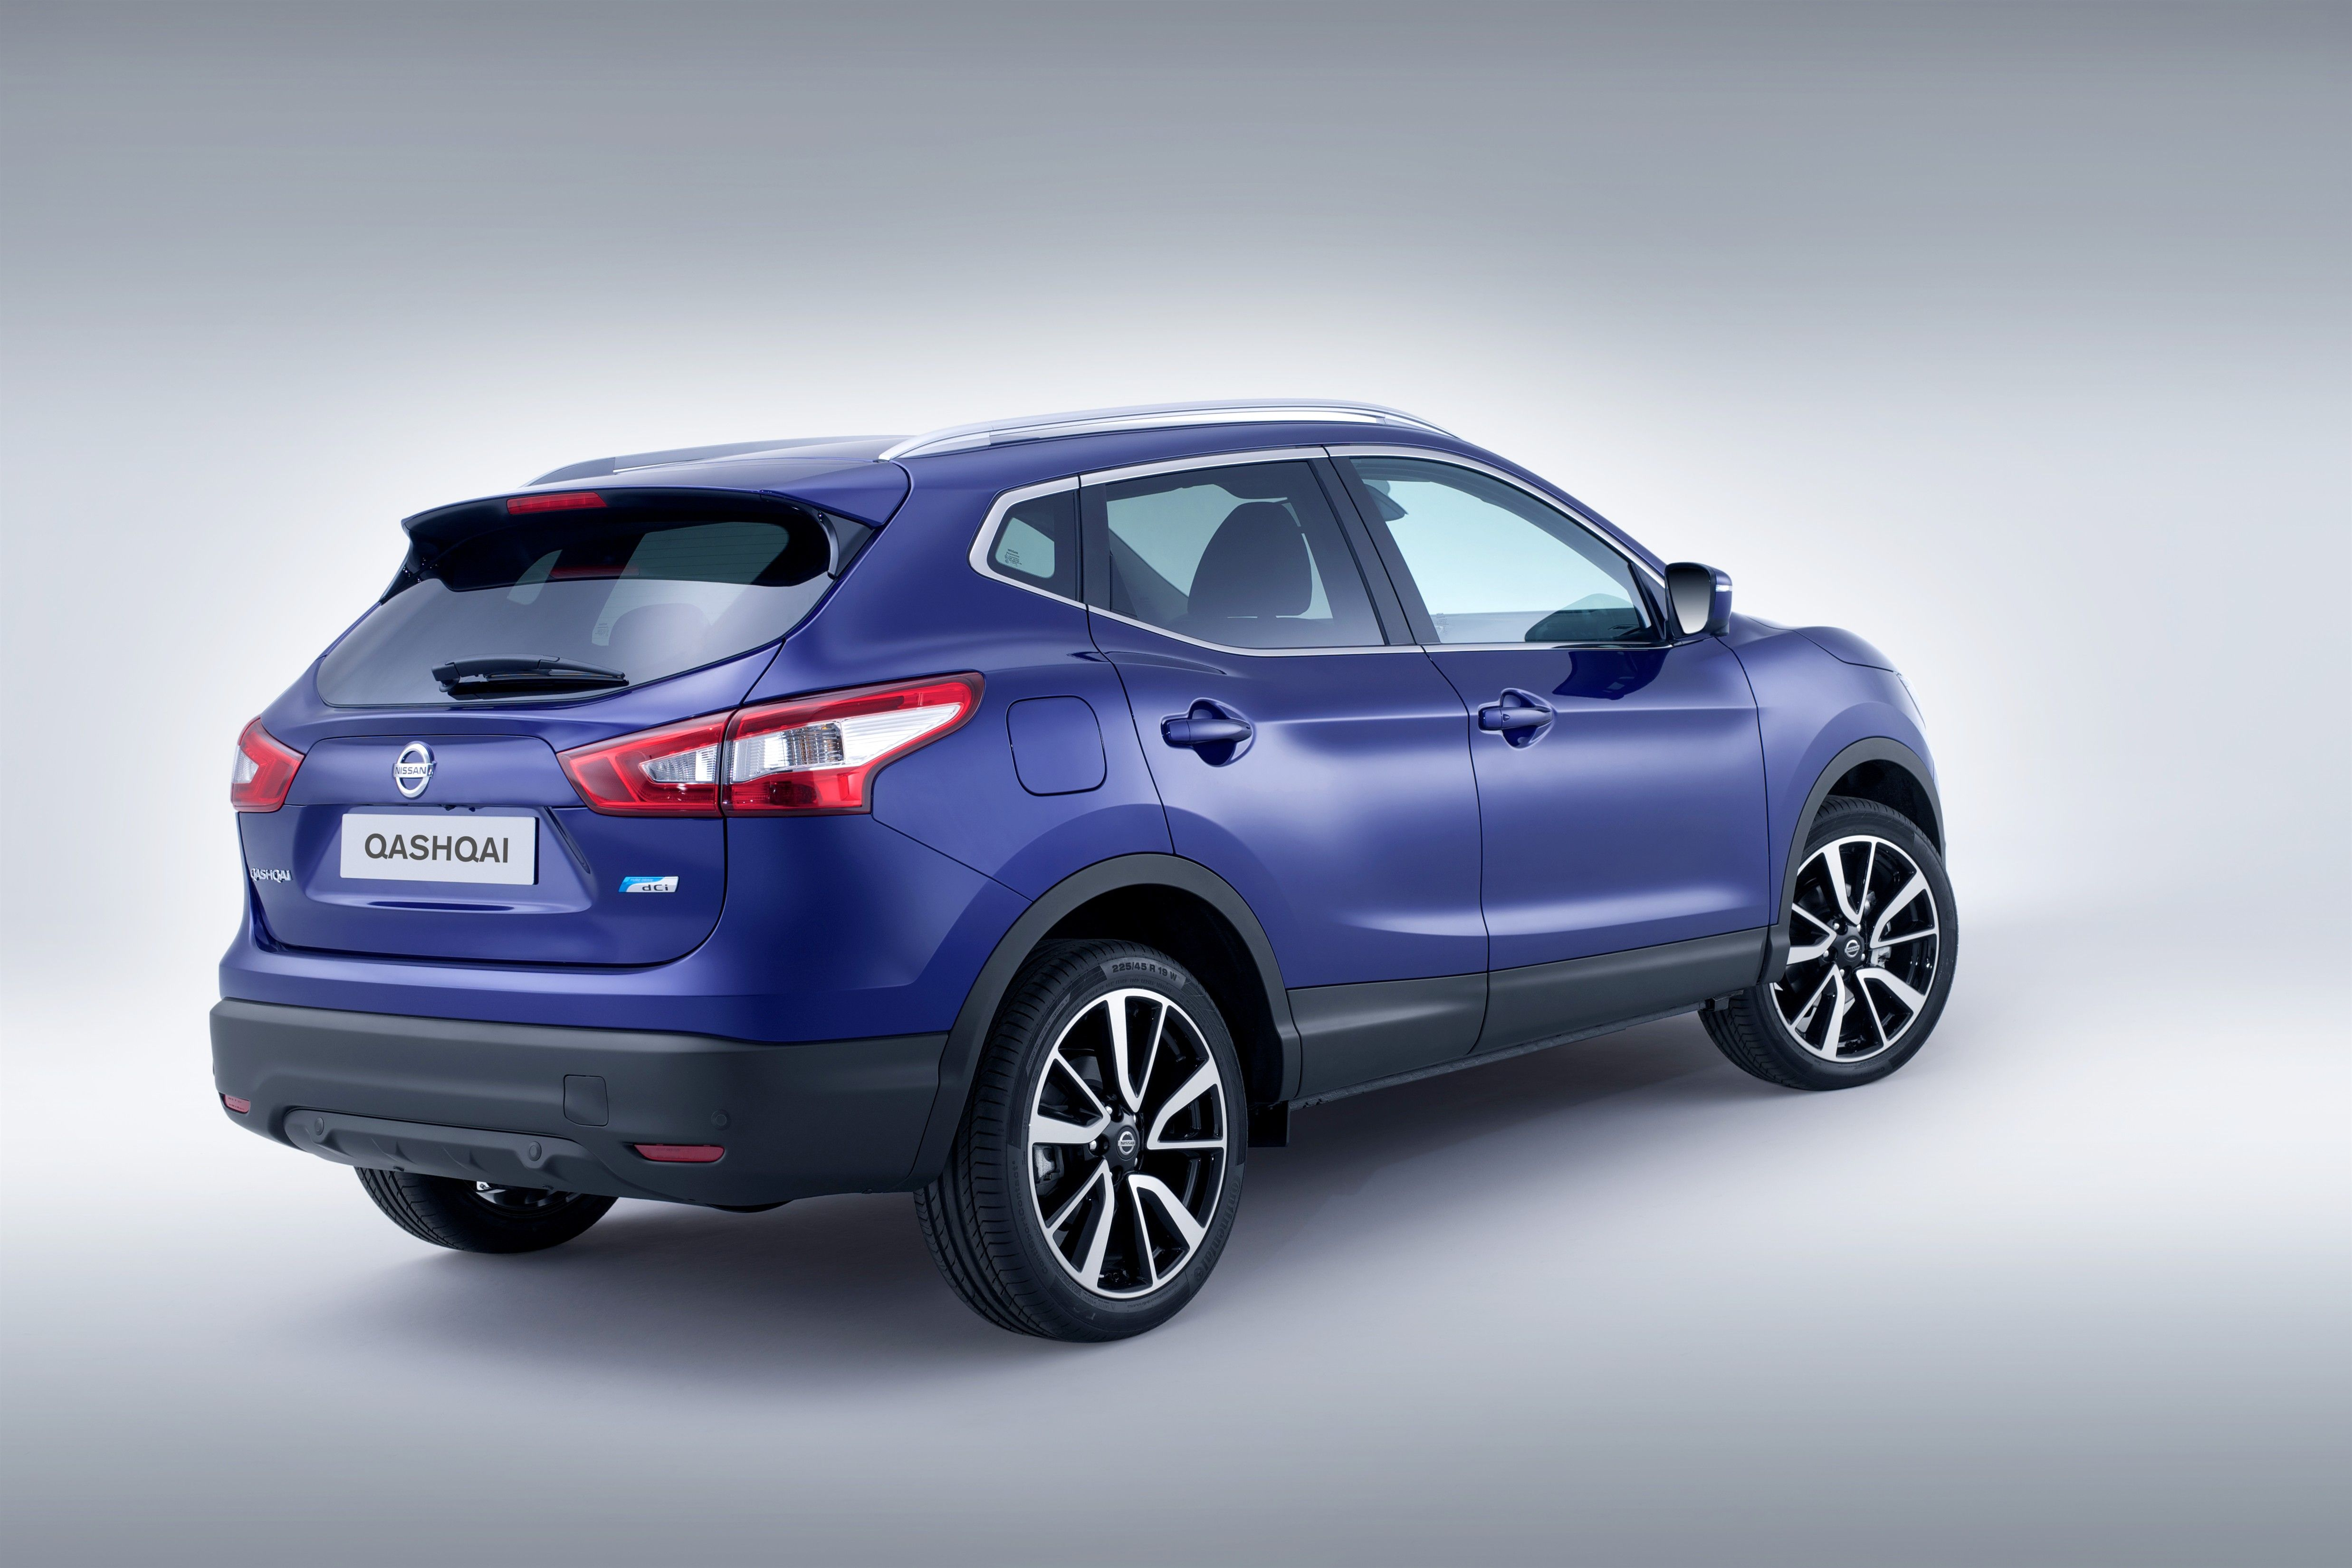 Last model nissan qashqai crossover comes of the car market in 2014 with new better performance technically and increased road safety